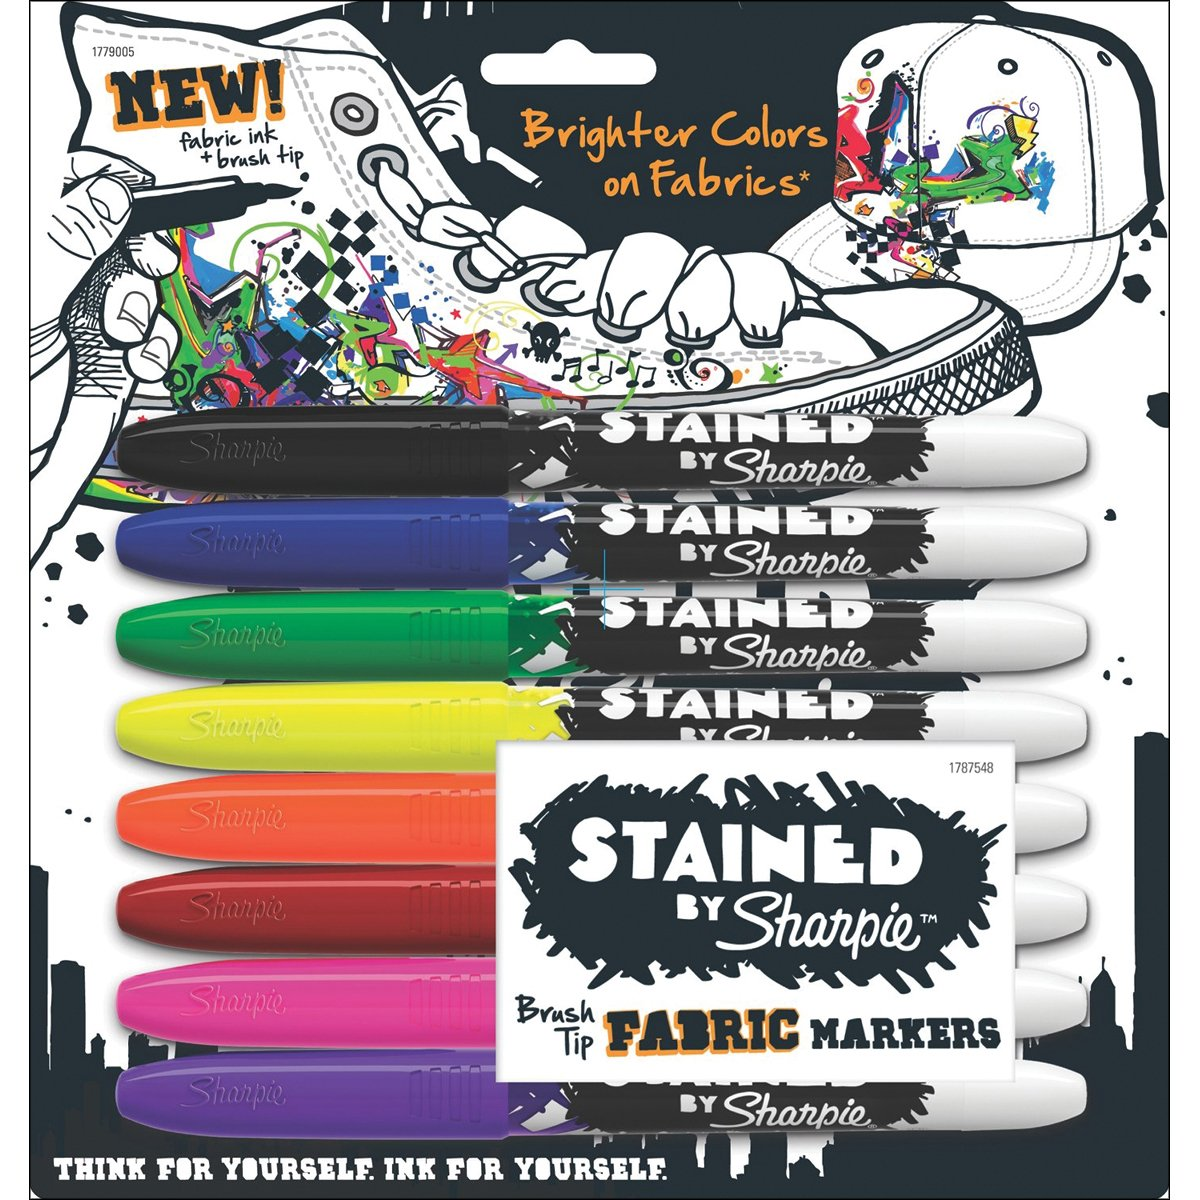 Amazon sharpie 1779005 stained fabric markers brush tip amazon sharpie 1779005 stained fabric markers brush tip assorted colors 8 count office products nvjuhfo Gallery